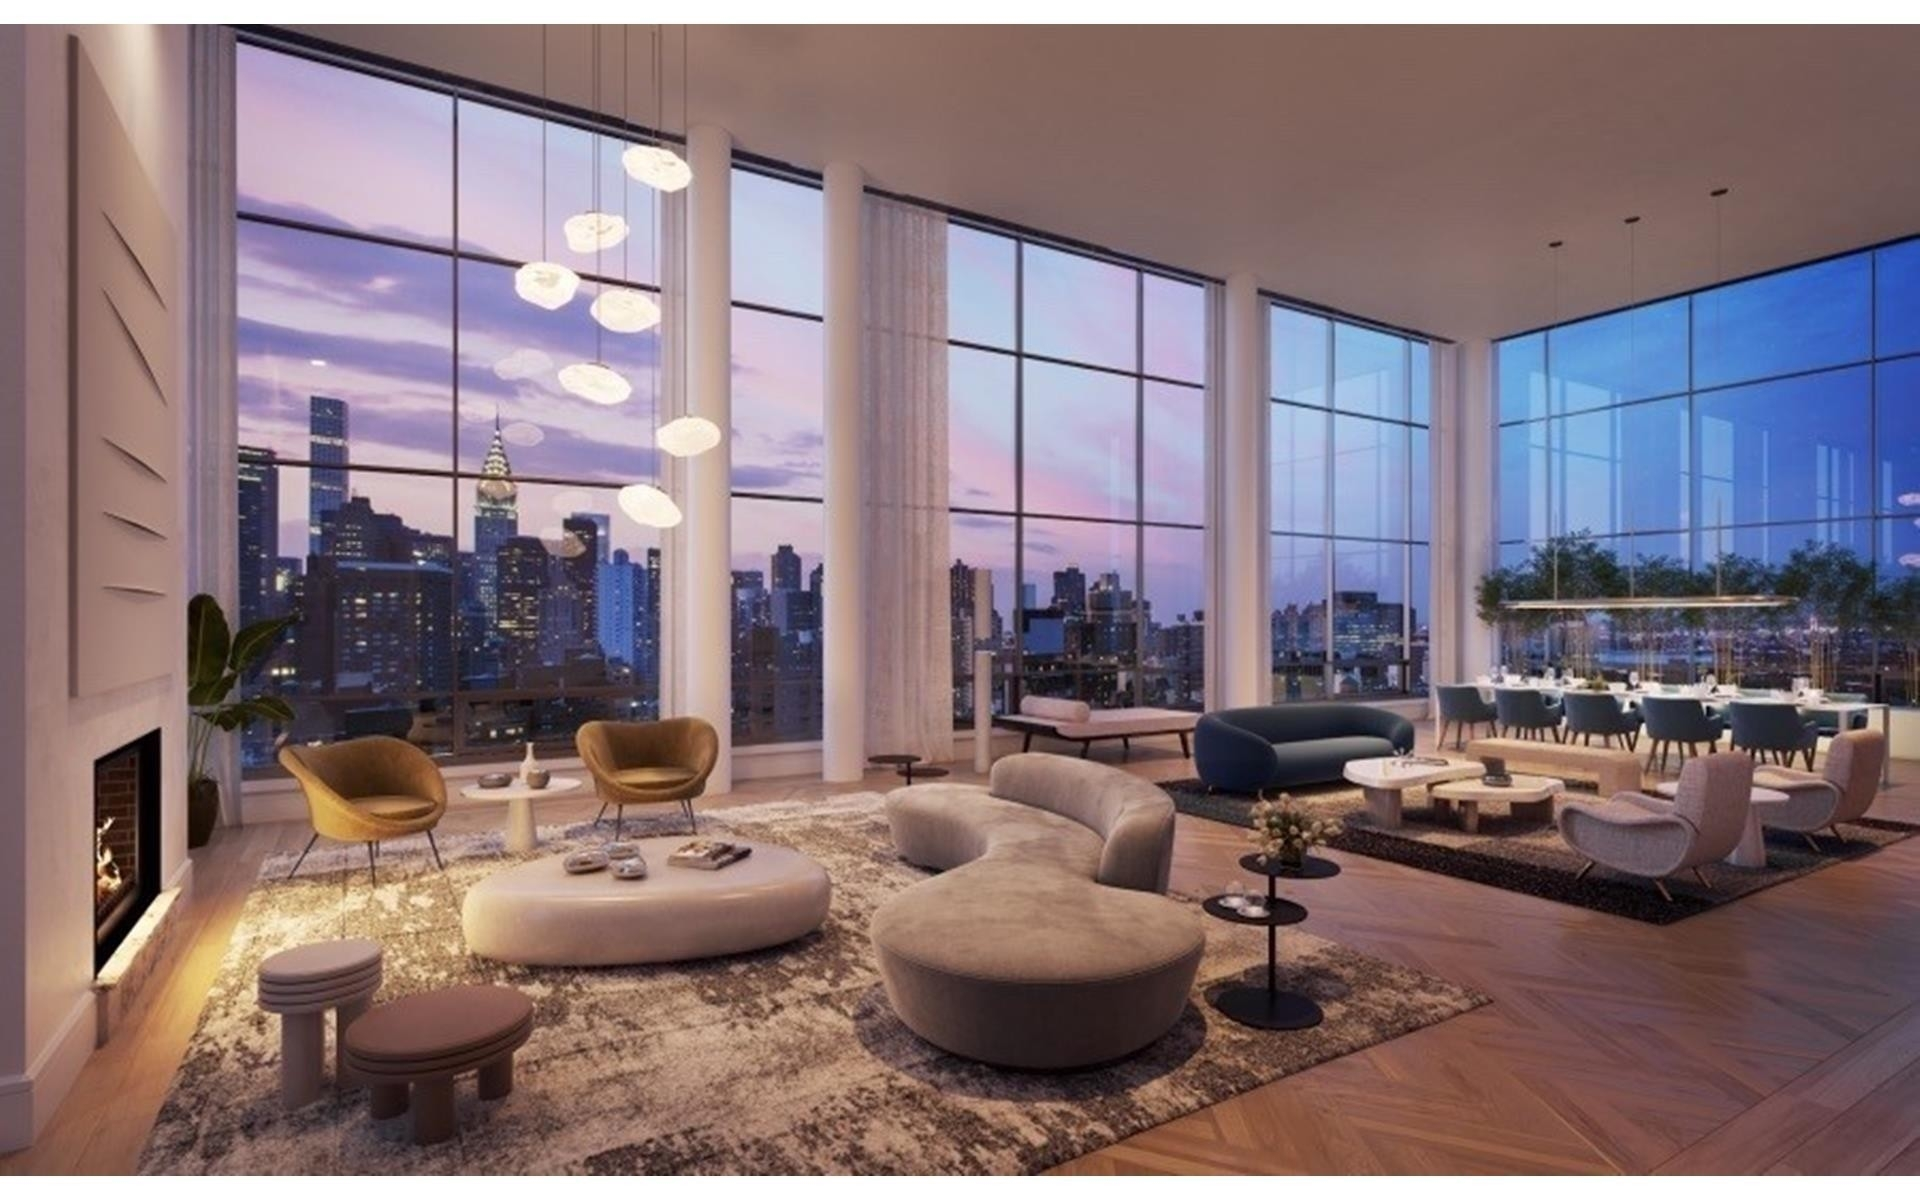 Property at Gramercy Square, 215 East 19th St, TOWERPH Gramercy Park, New York, NY 10003